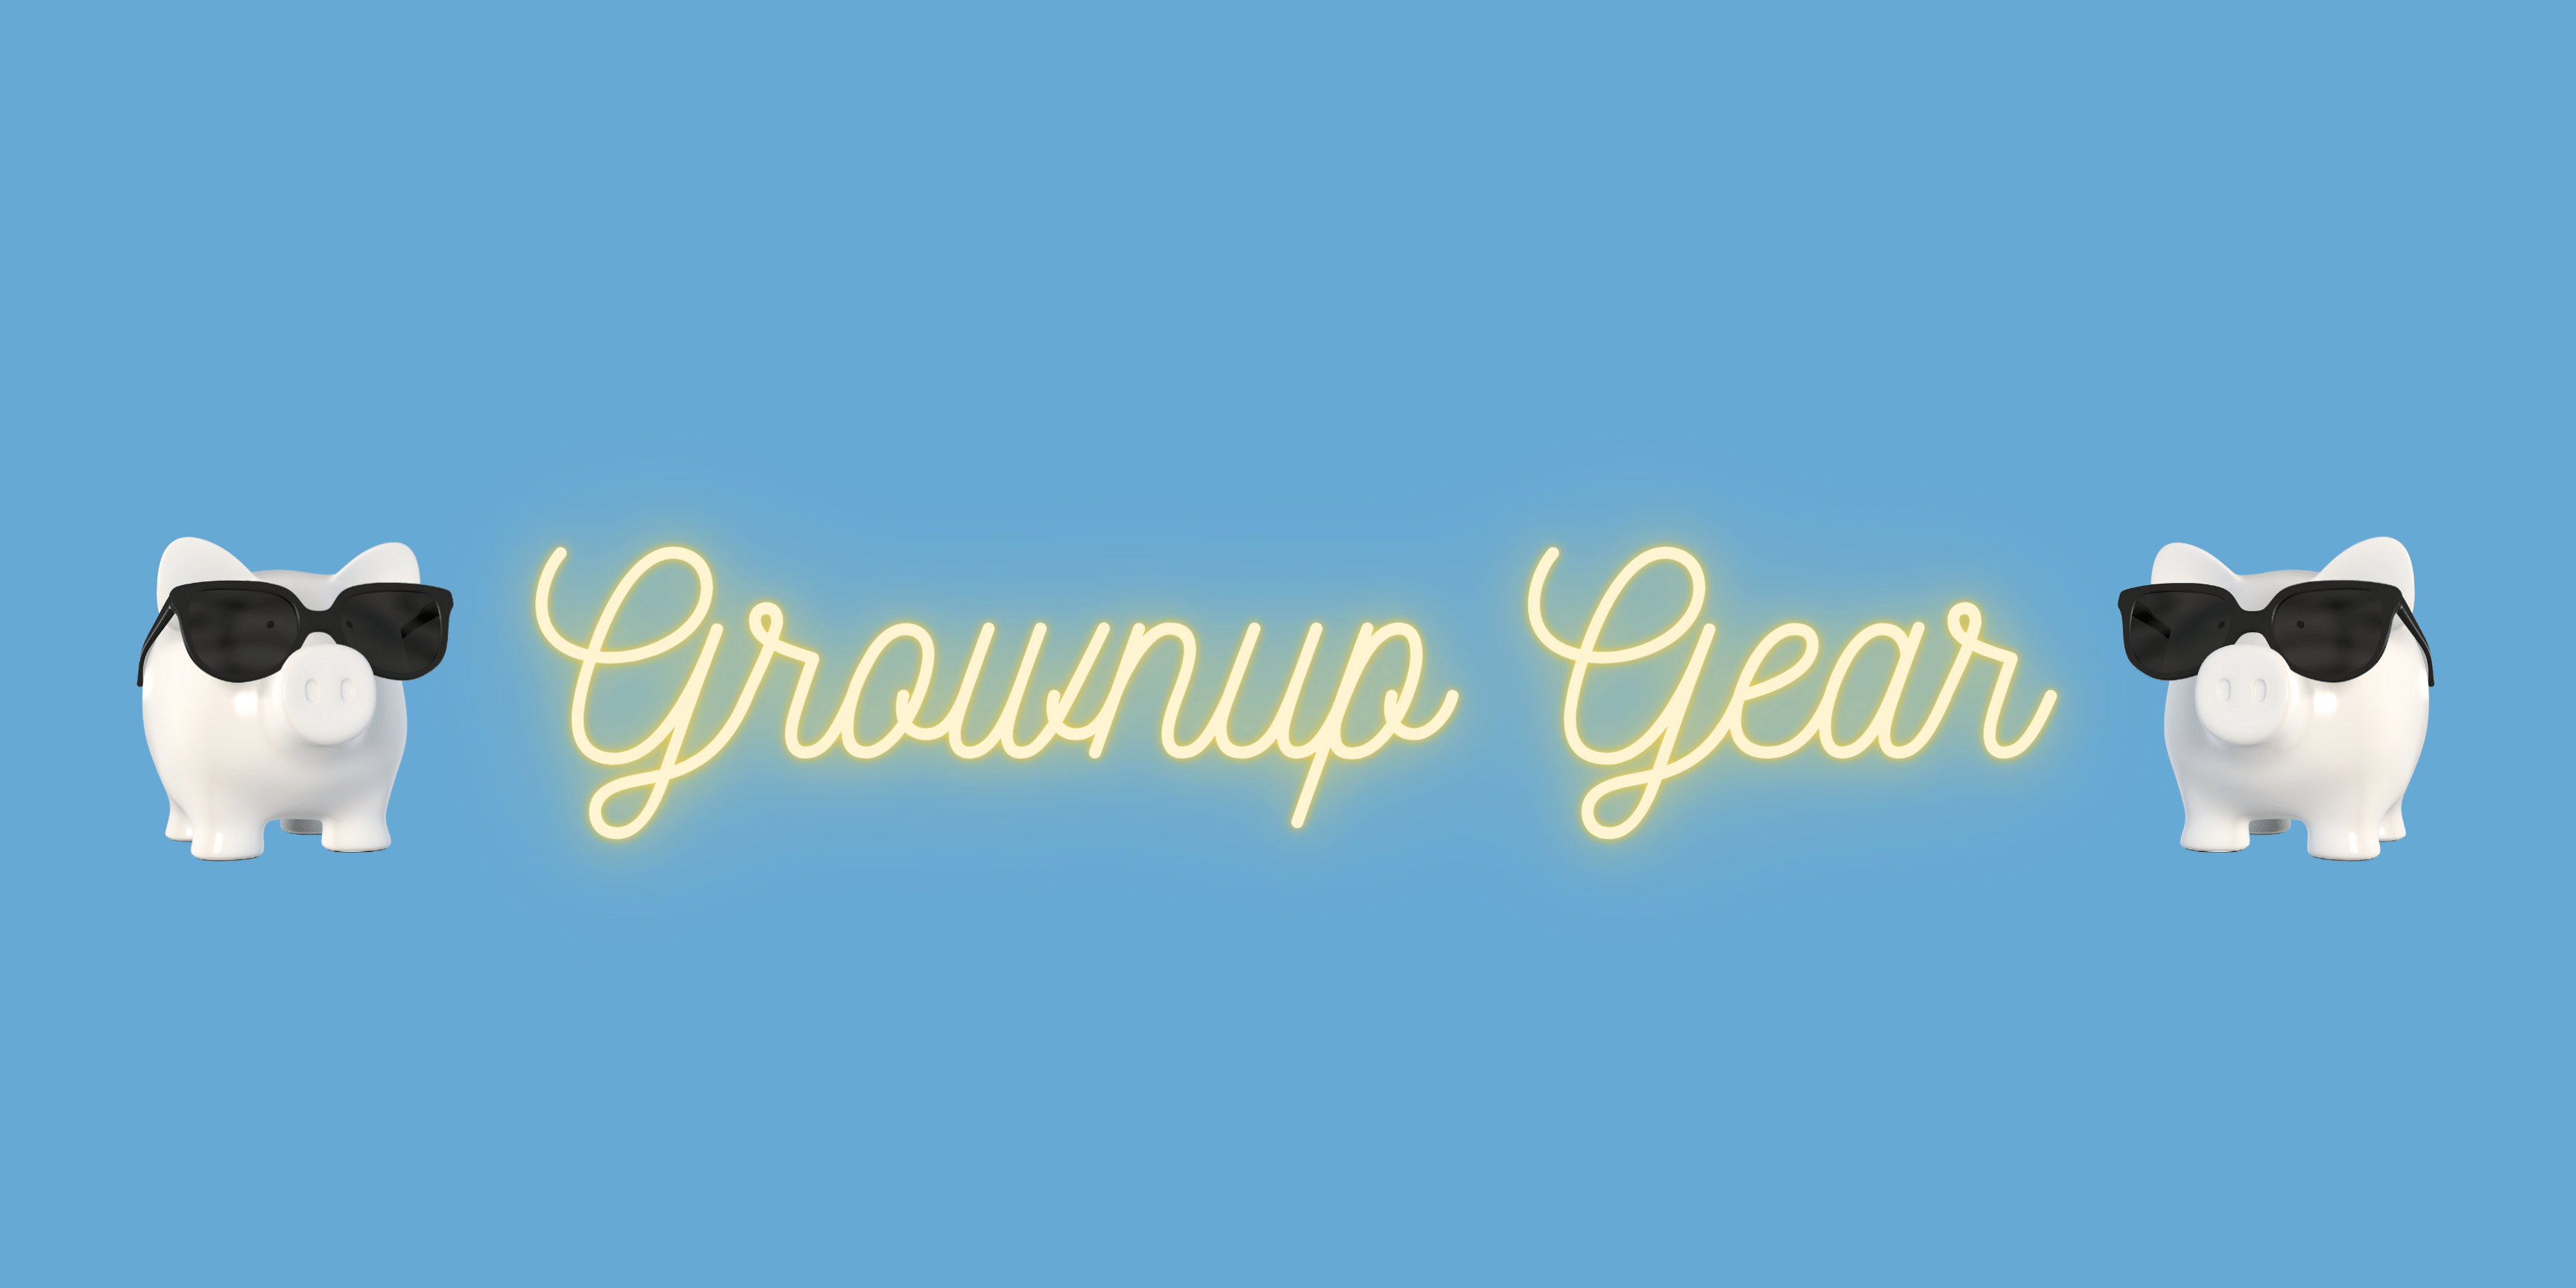 Grown Up Gear Banner Opens in a new tab